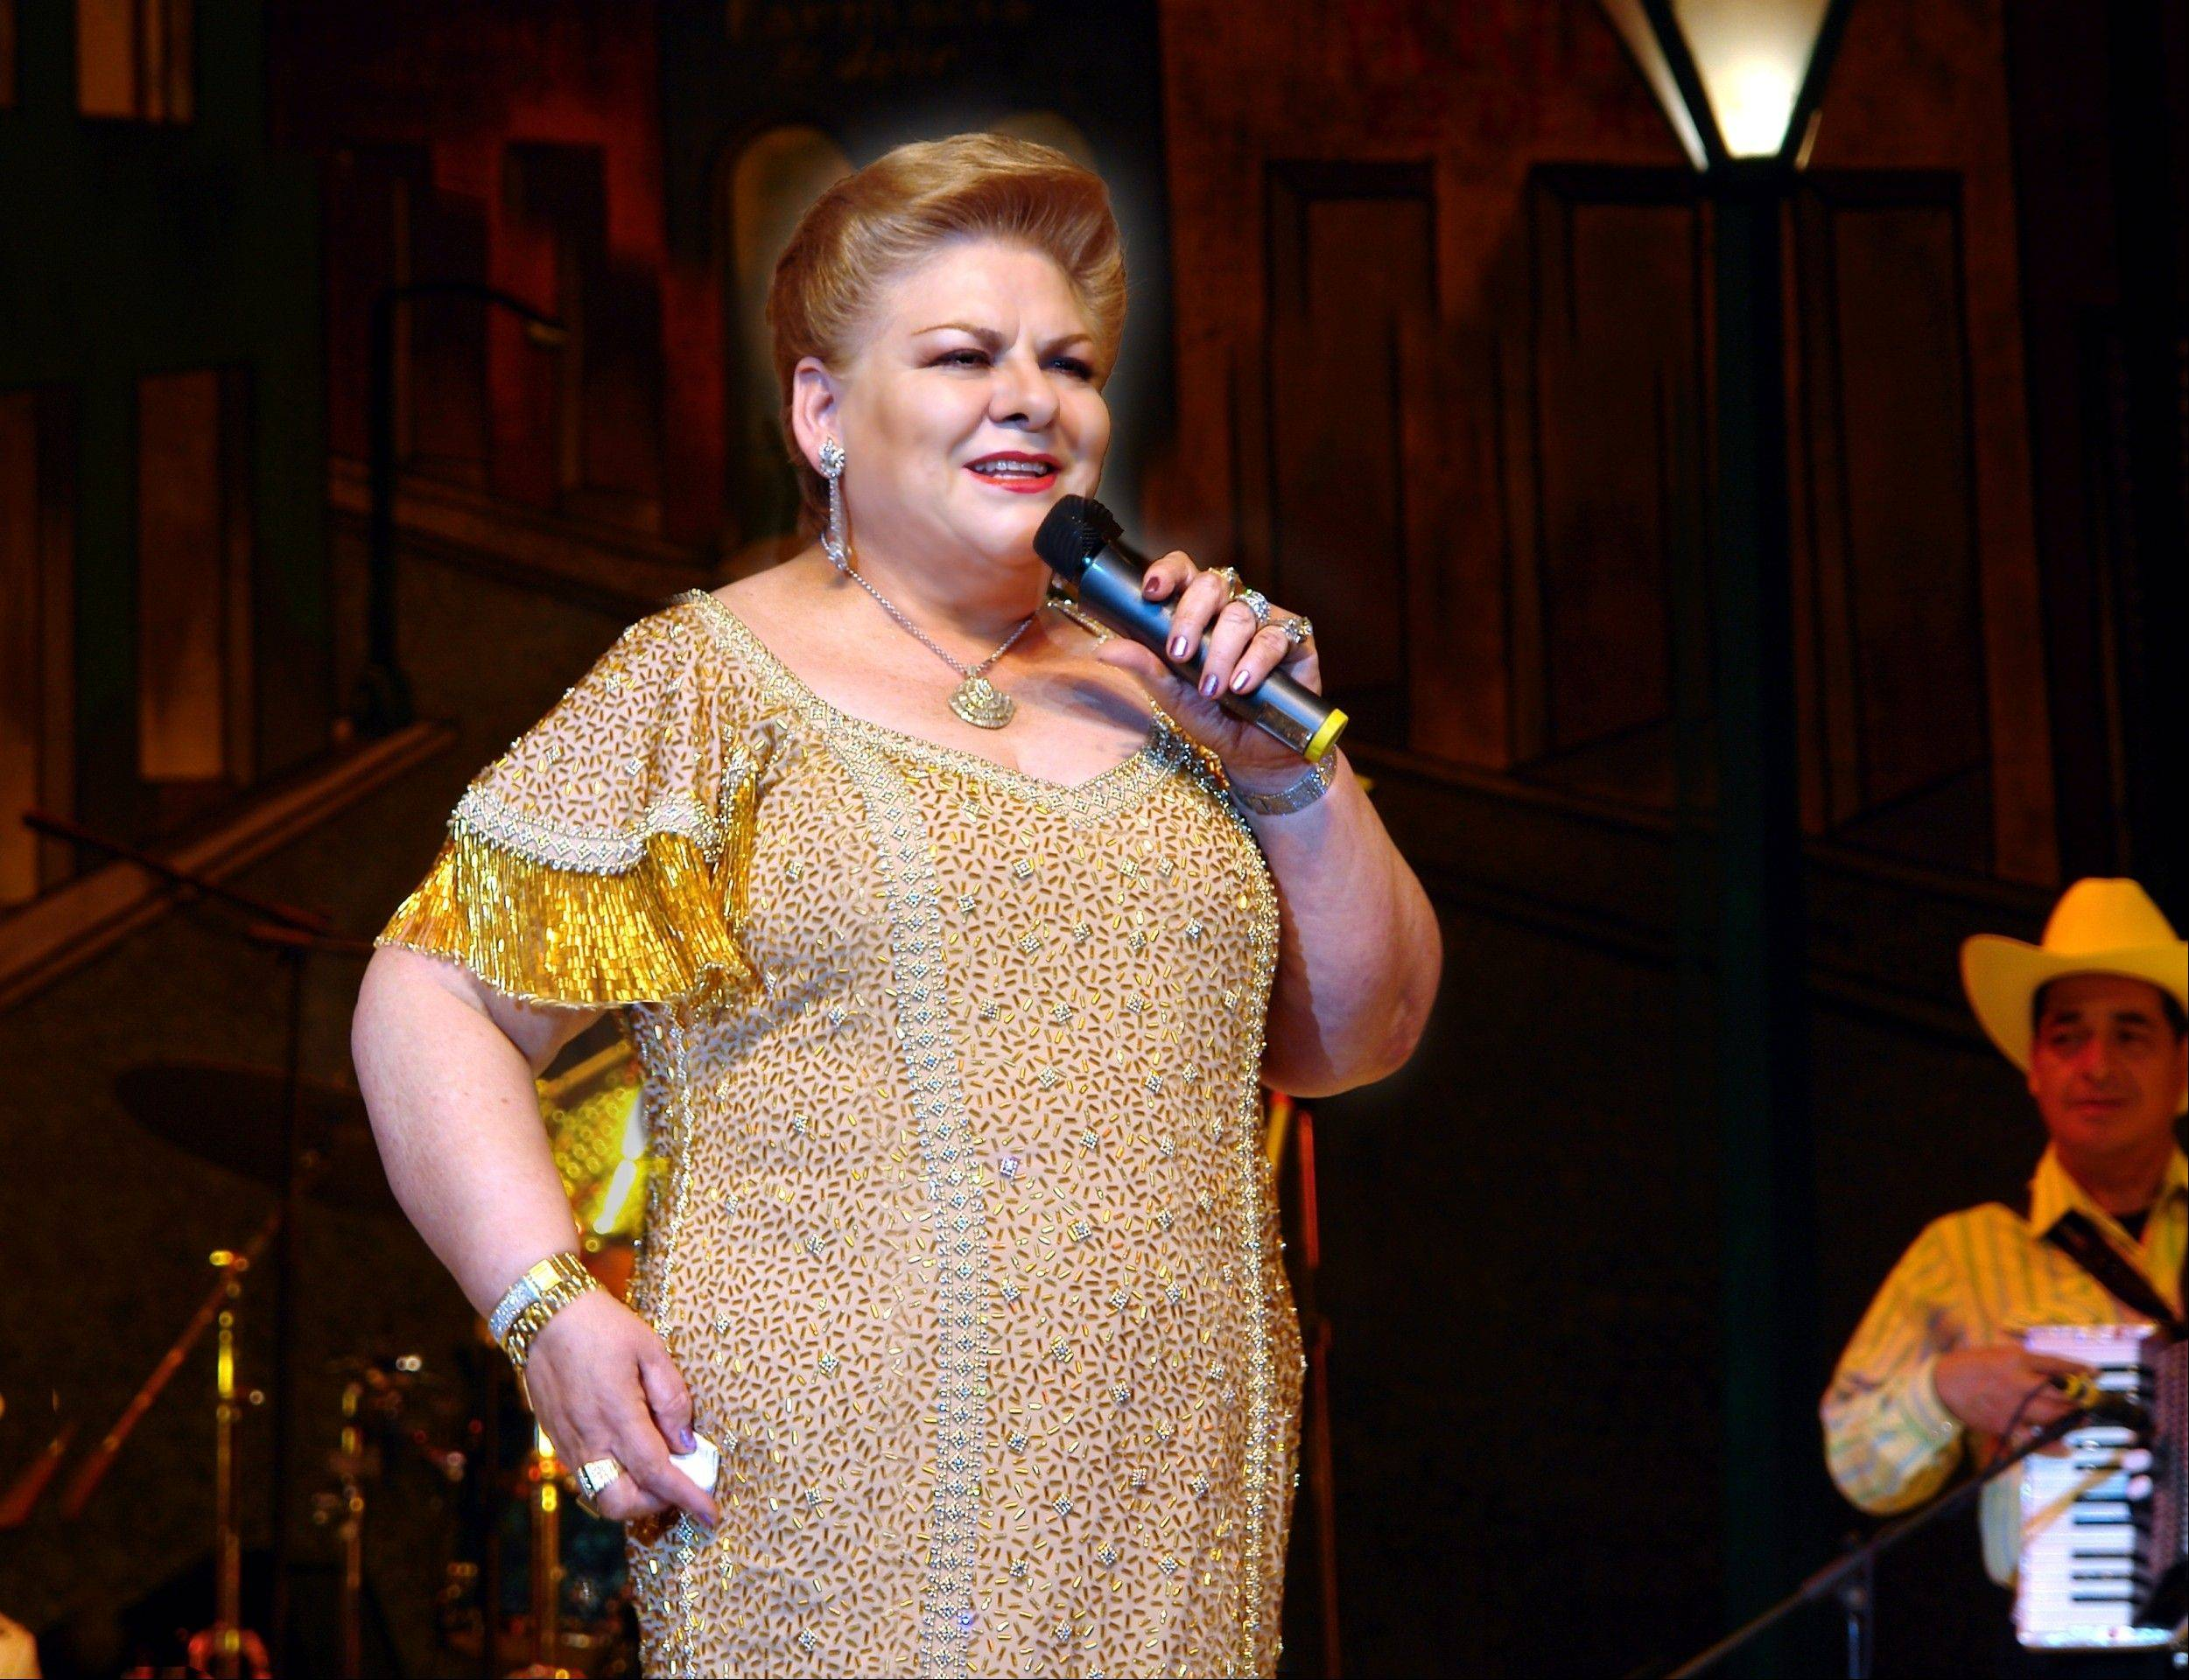 Paquita La Del Barrio is set to perform at RiverEdge Park in Aurora.